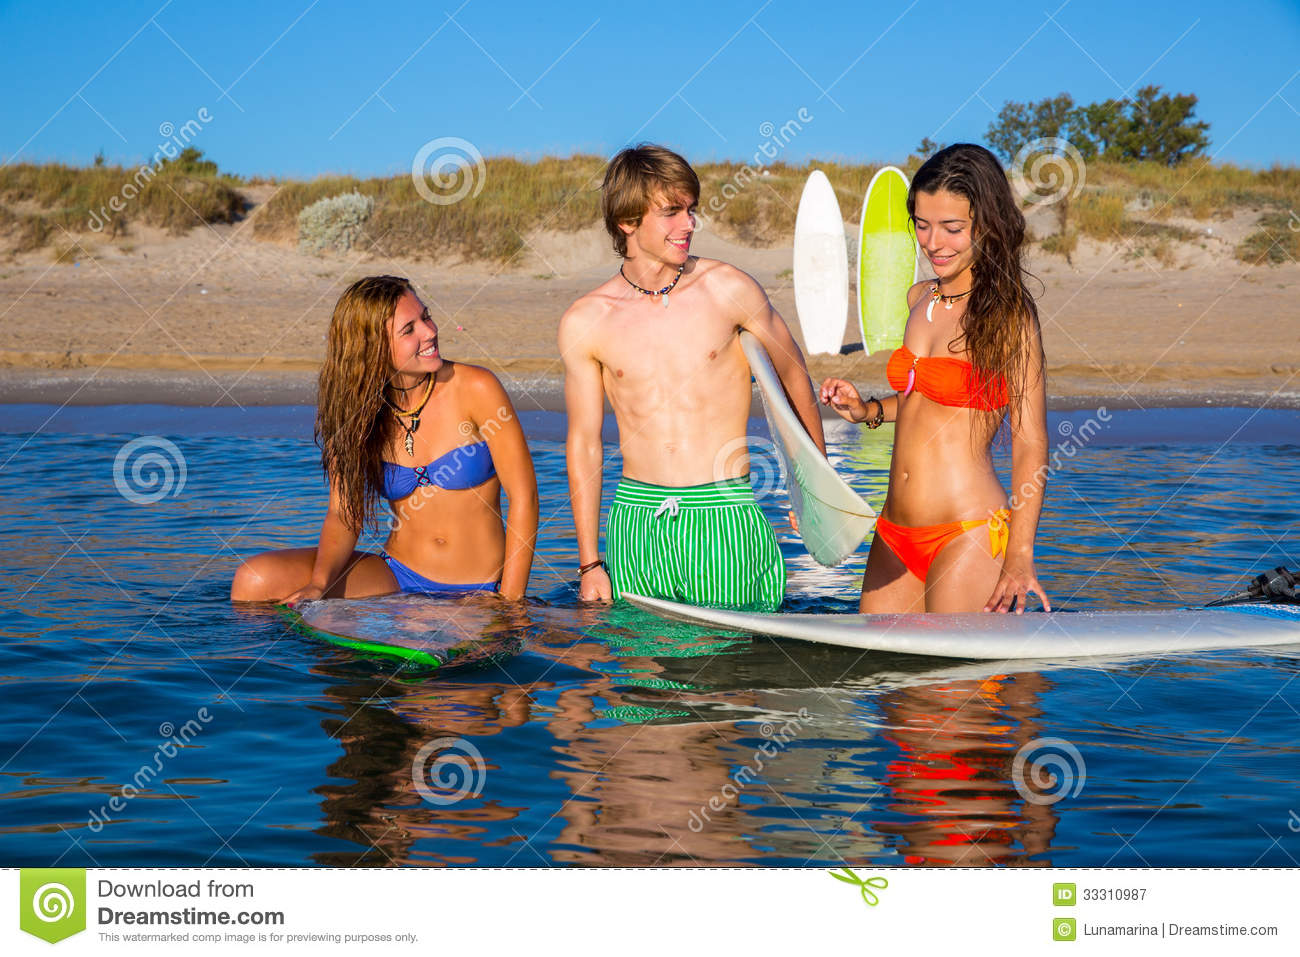 Happy Teen Surfers Talking On Beach Shore Royalty Free ...: http://www.dreamstime.com/royalty-free-stock-photography-happy-teen-surfers-talking-beach-shore-beautiful-smiling-image33310987